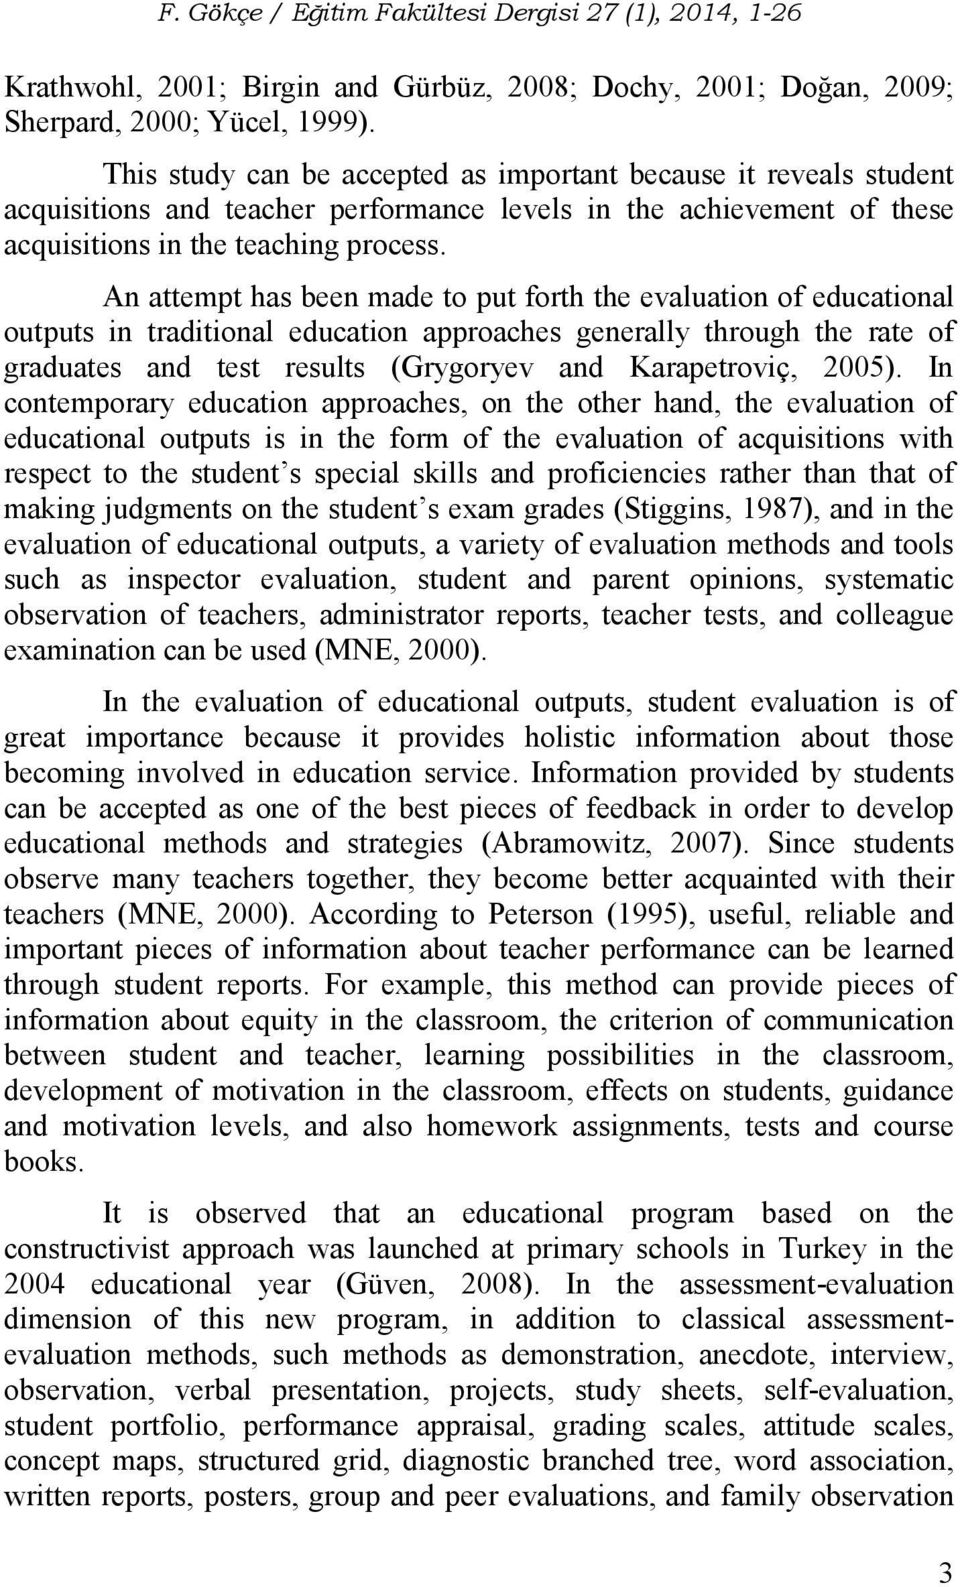 An attempt has been made to put forth the evaluation of educational outputs in traditional education approaches generally through the rate of graduates and test results (Grygoryev and Karapetroviç,